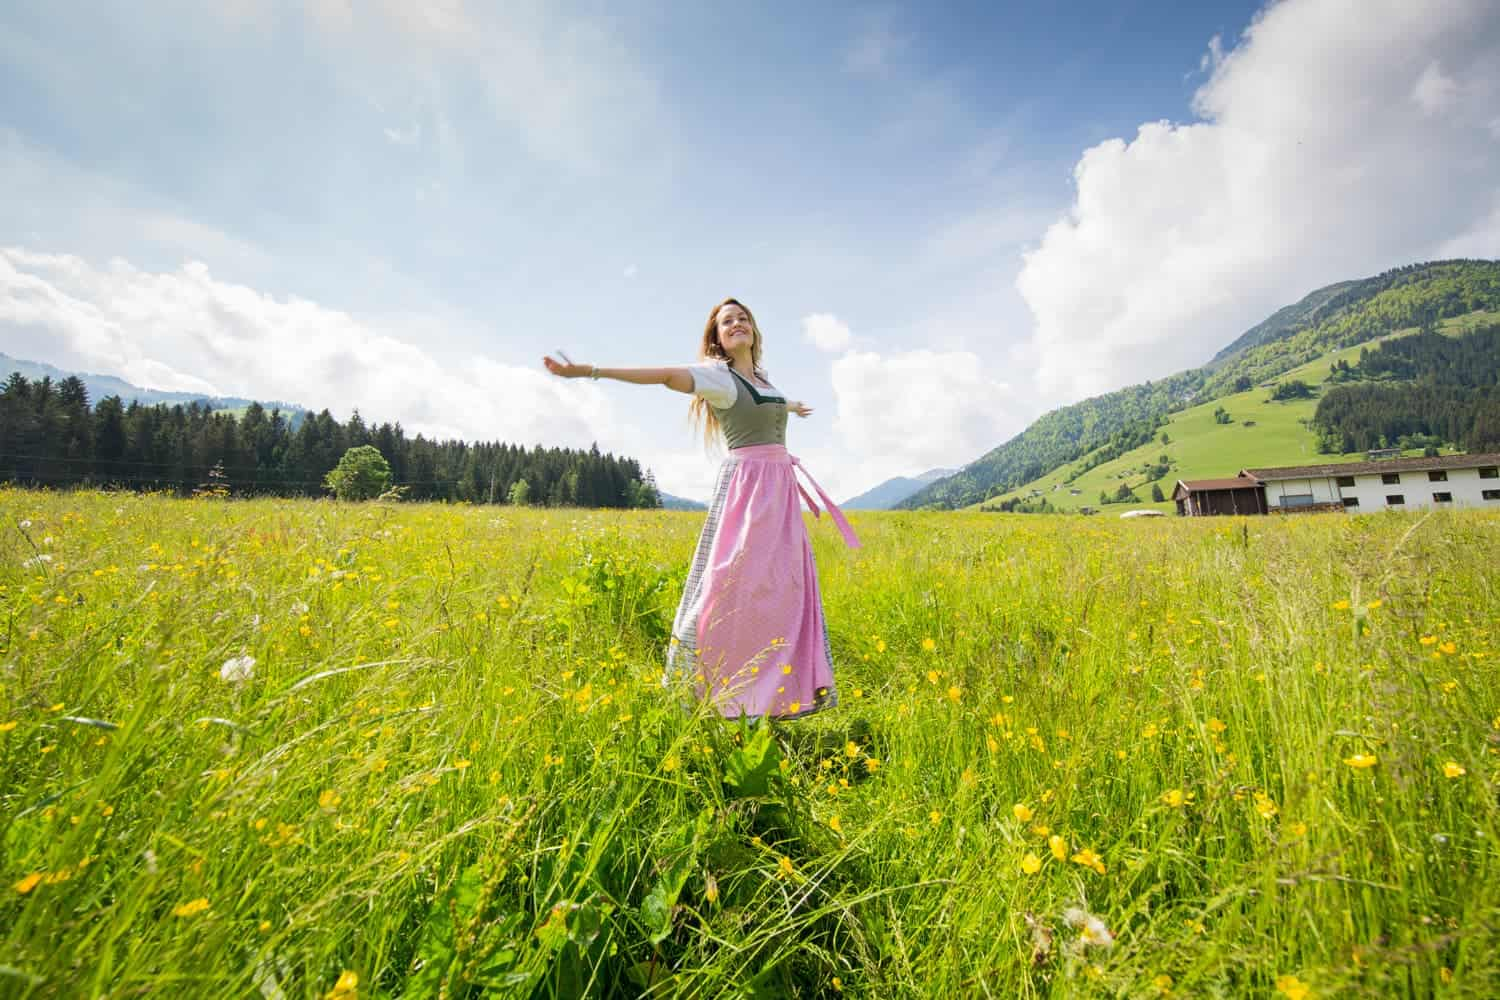 Becki Enright reenacting Sound of Music. Photo: Christian Lendl